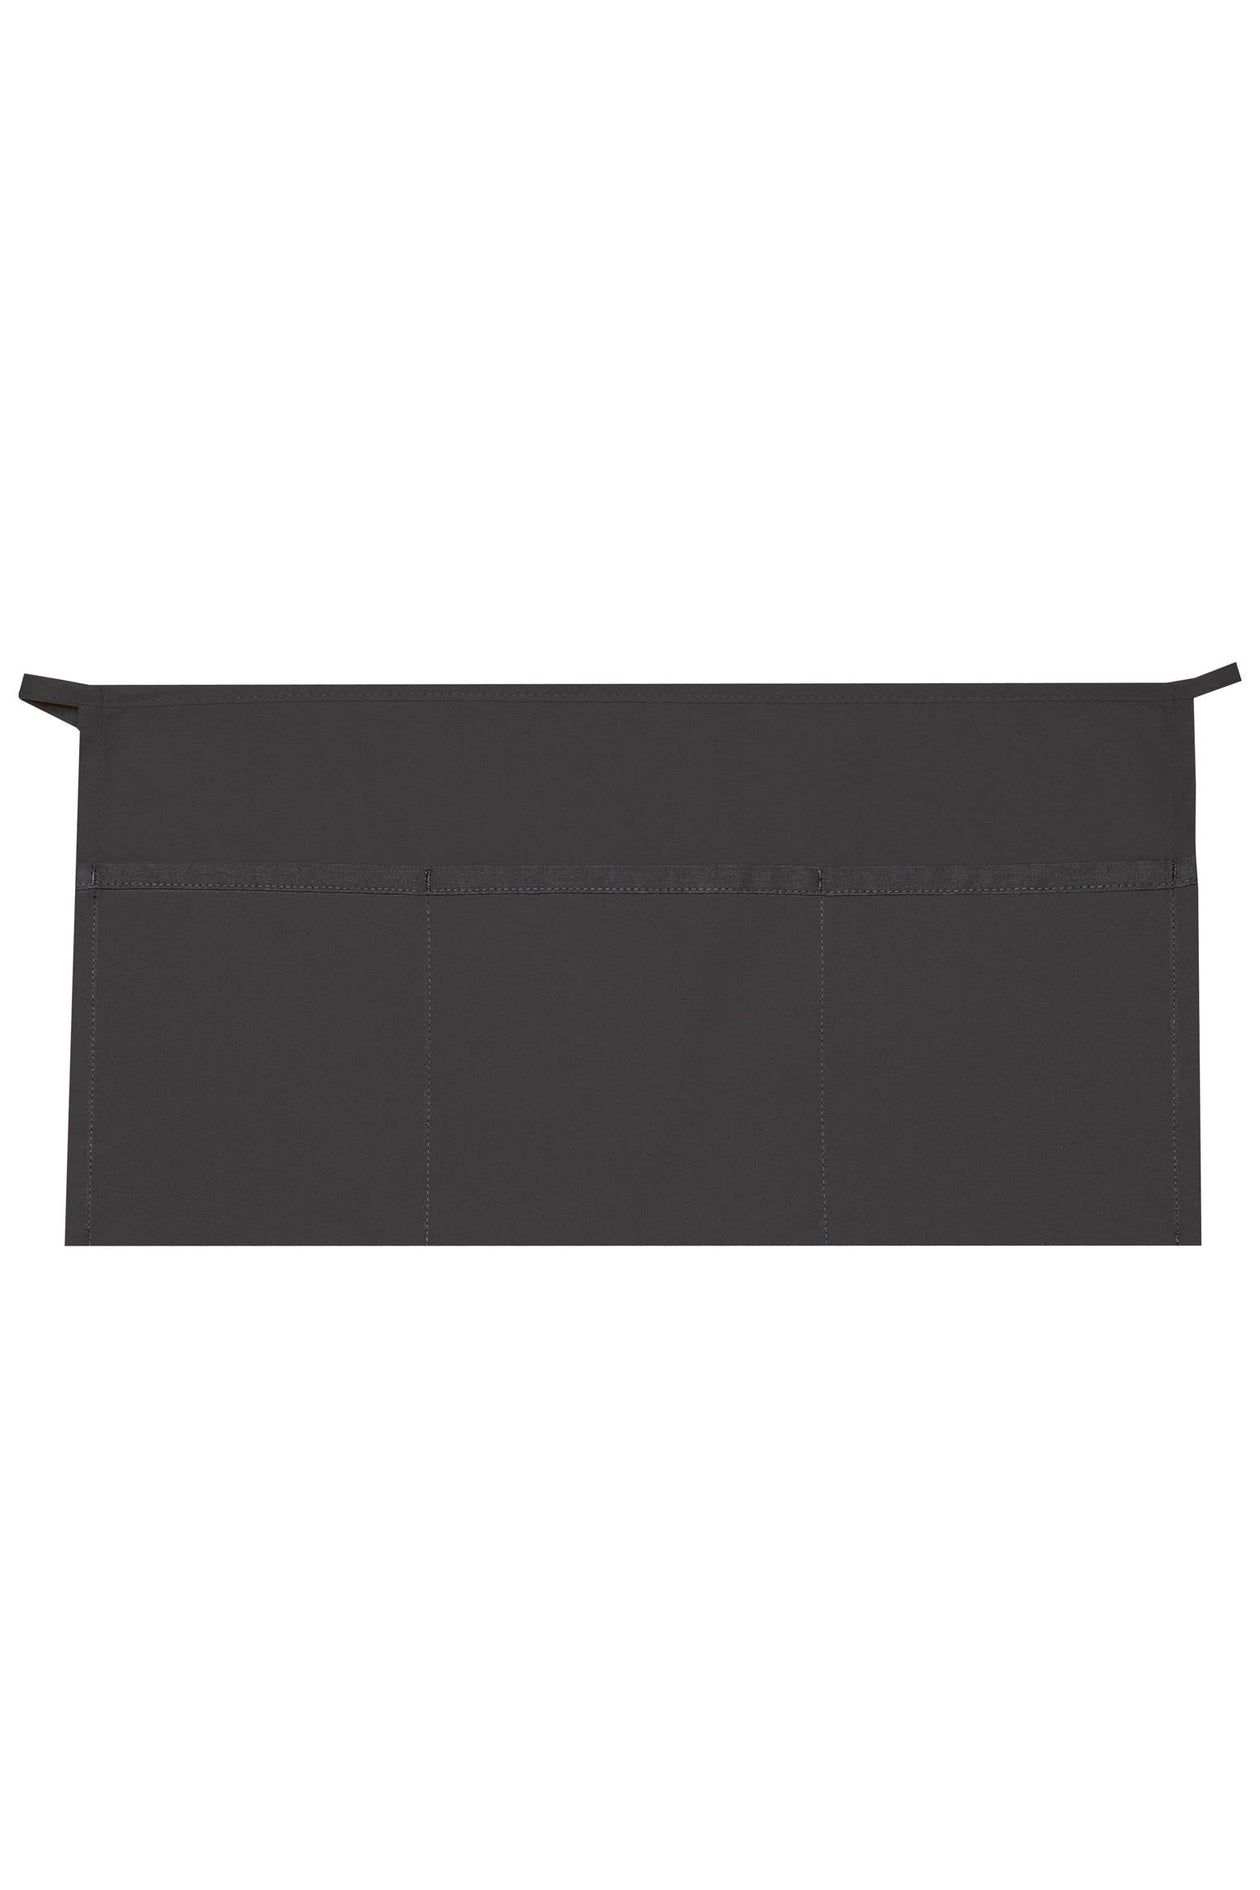 Charcoal XL Waist Apron (3 Pockets)